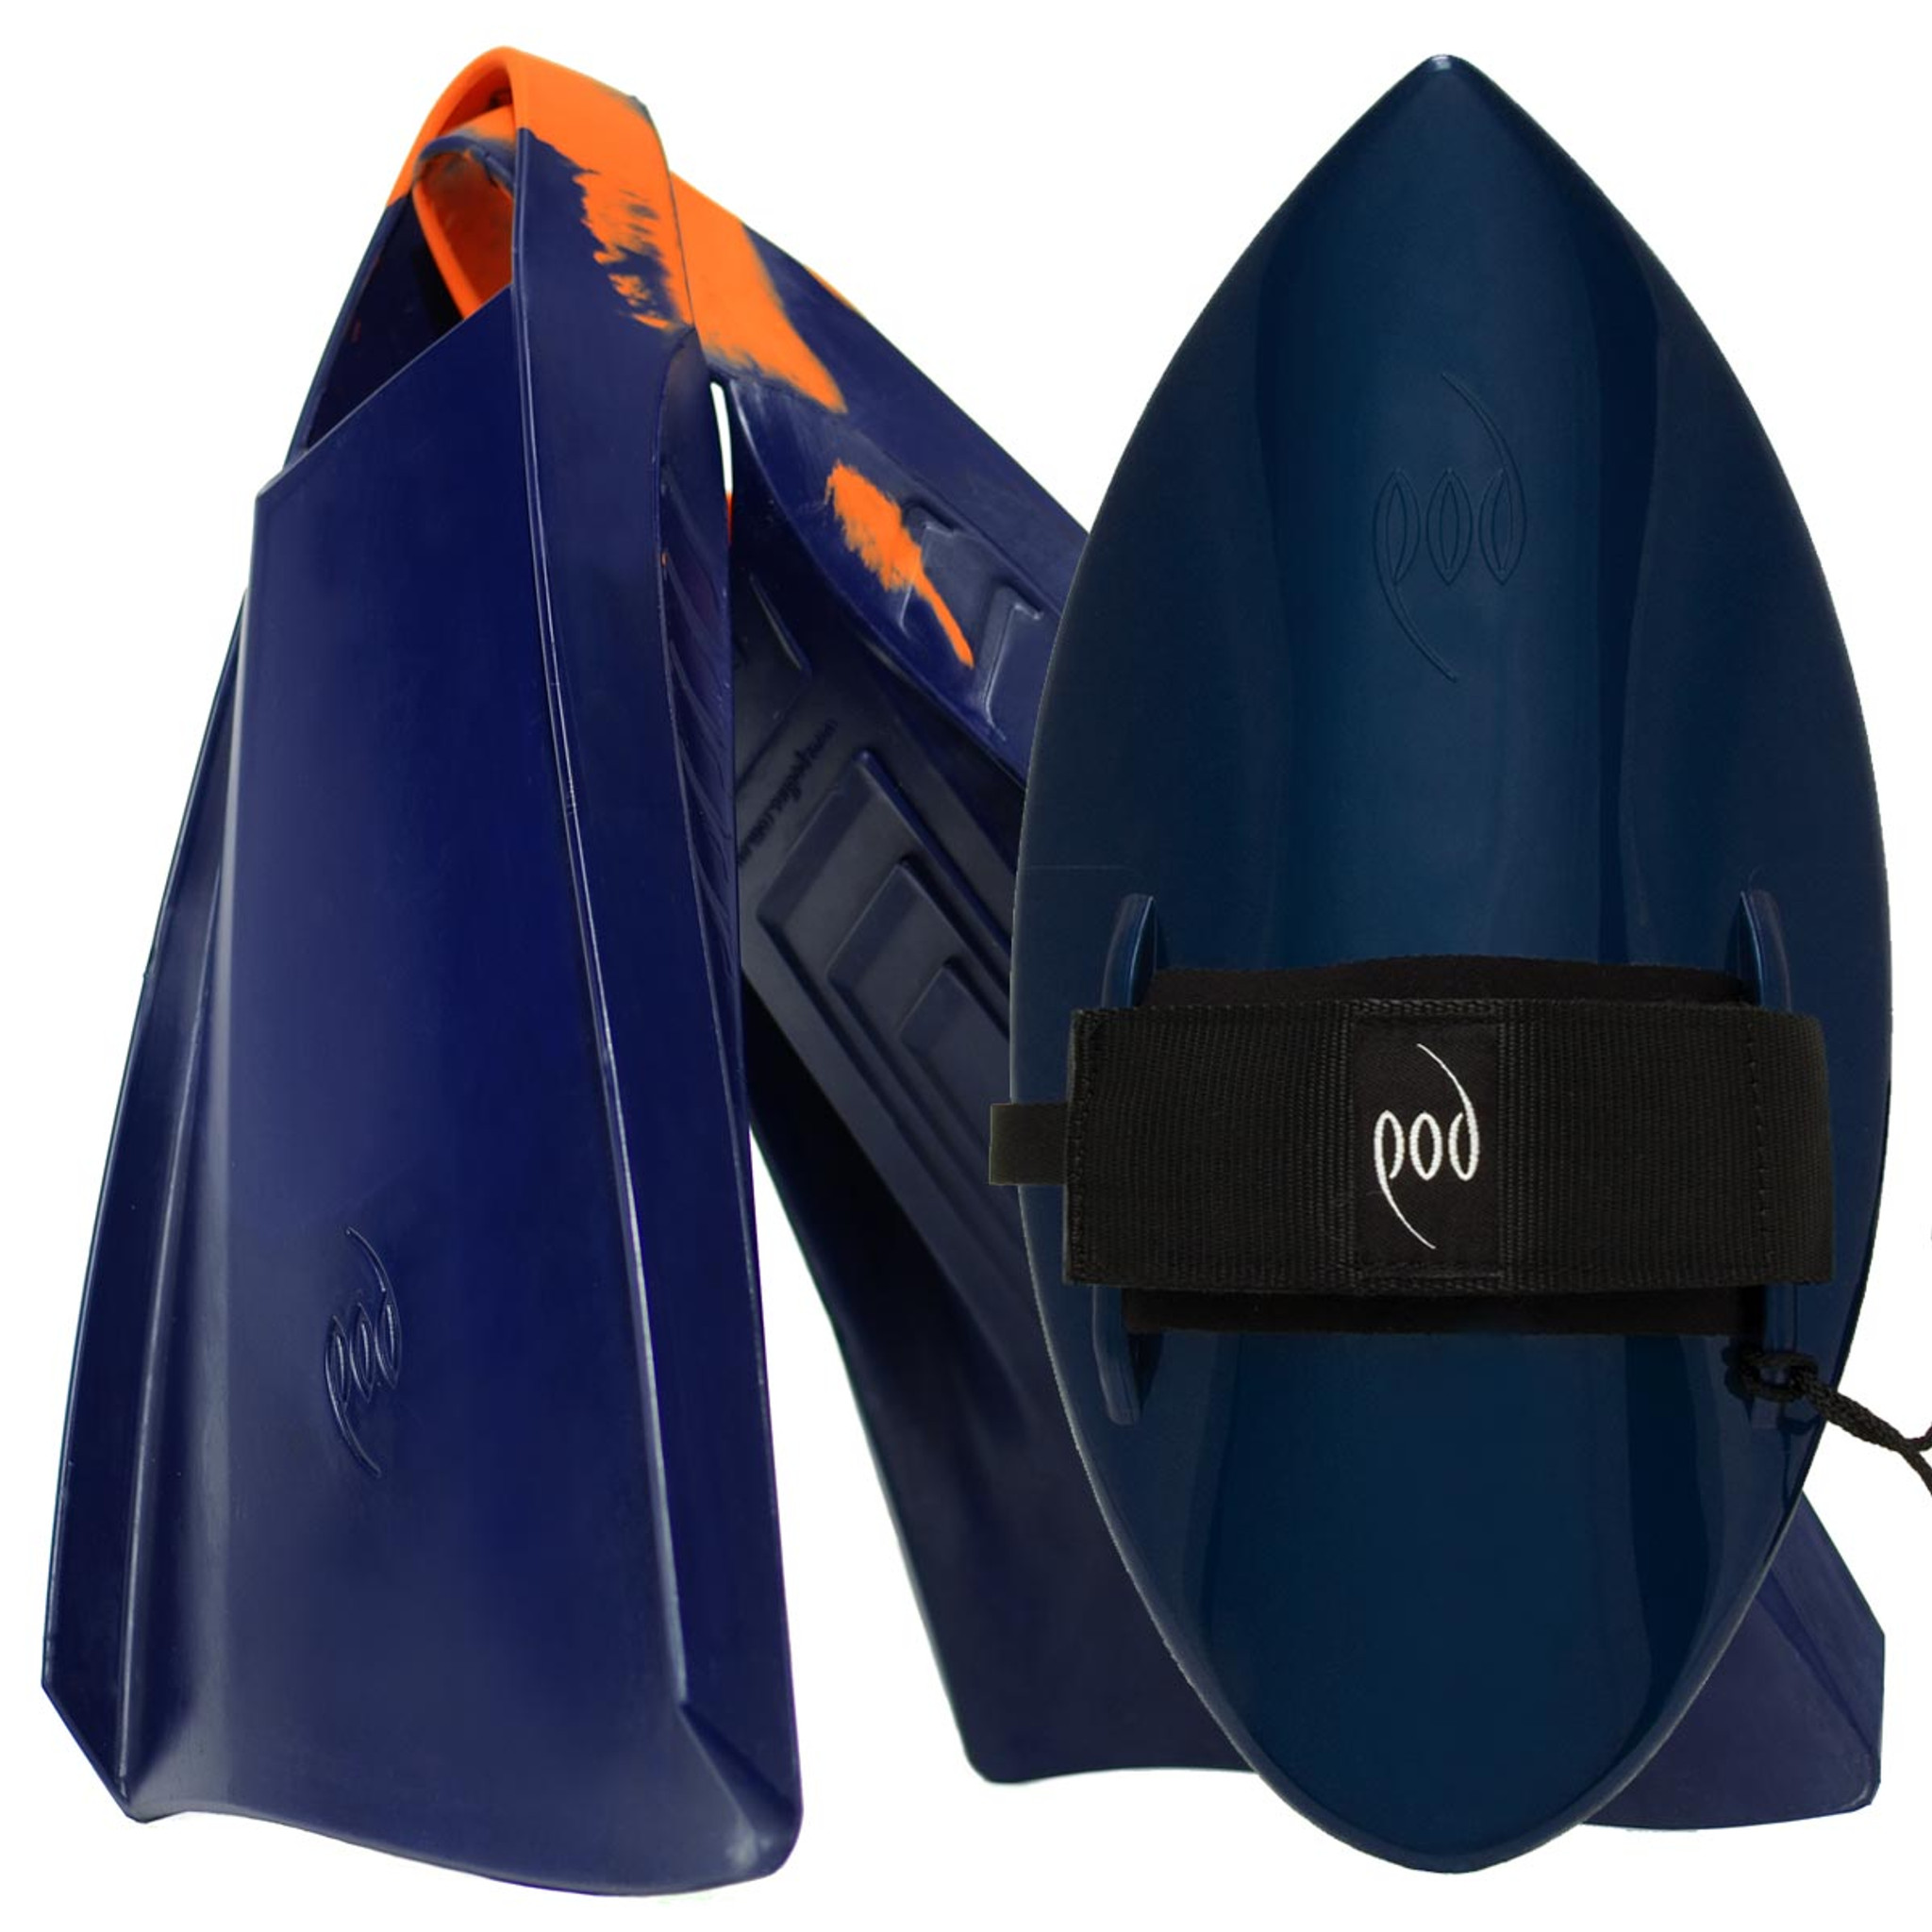 POD Fins PF3s Navy/Orange - Black/Blue POD Handboard